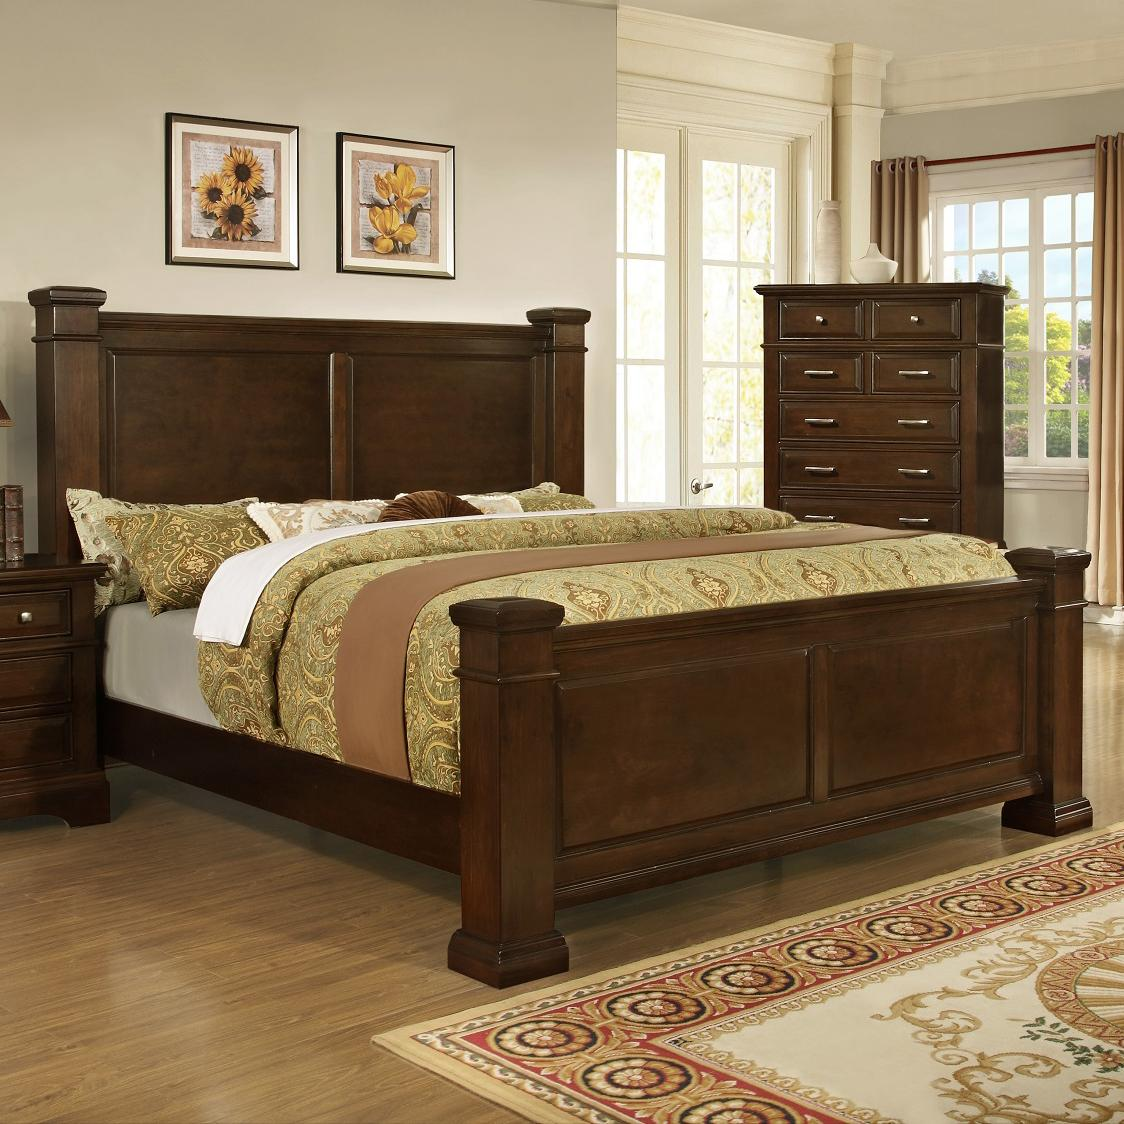 Lifestyle Timber Queen Bed   Item Number  C4131 010 011 012. Lifestyle Timber Transitional Queen Bed   Royal Furniture